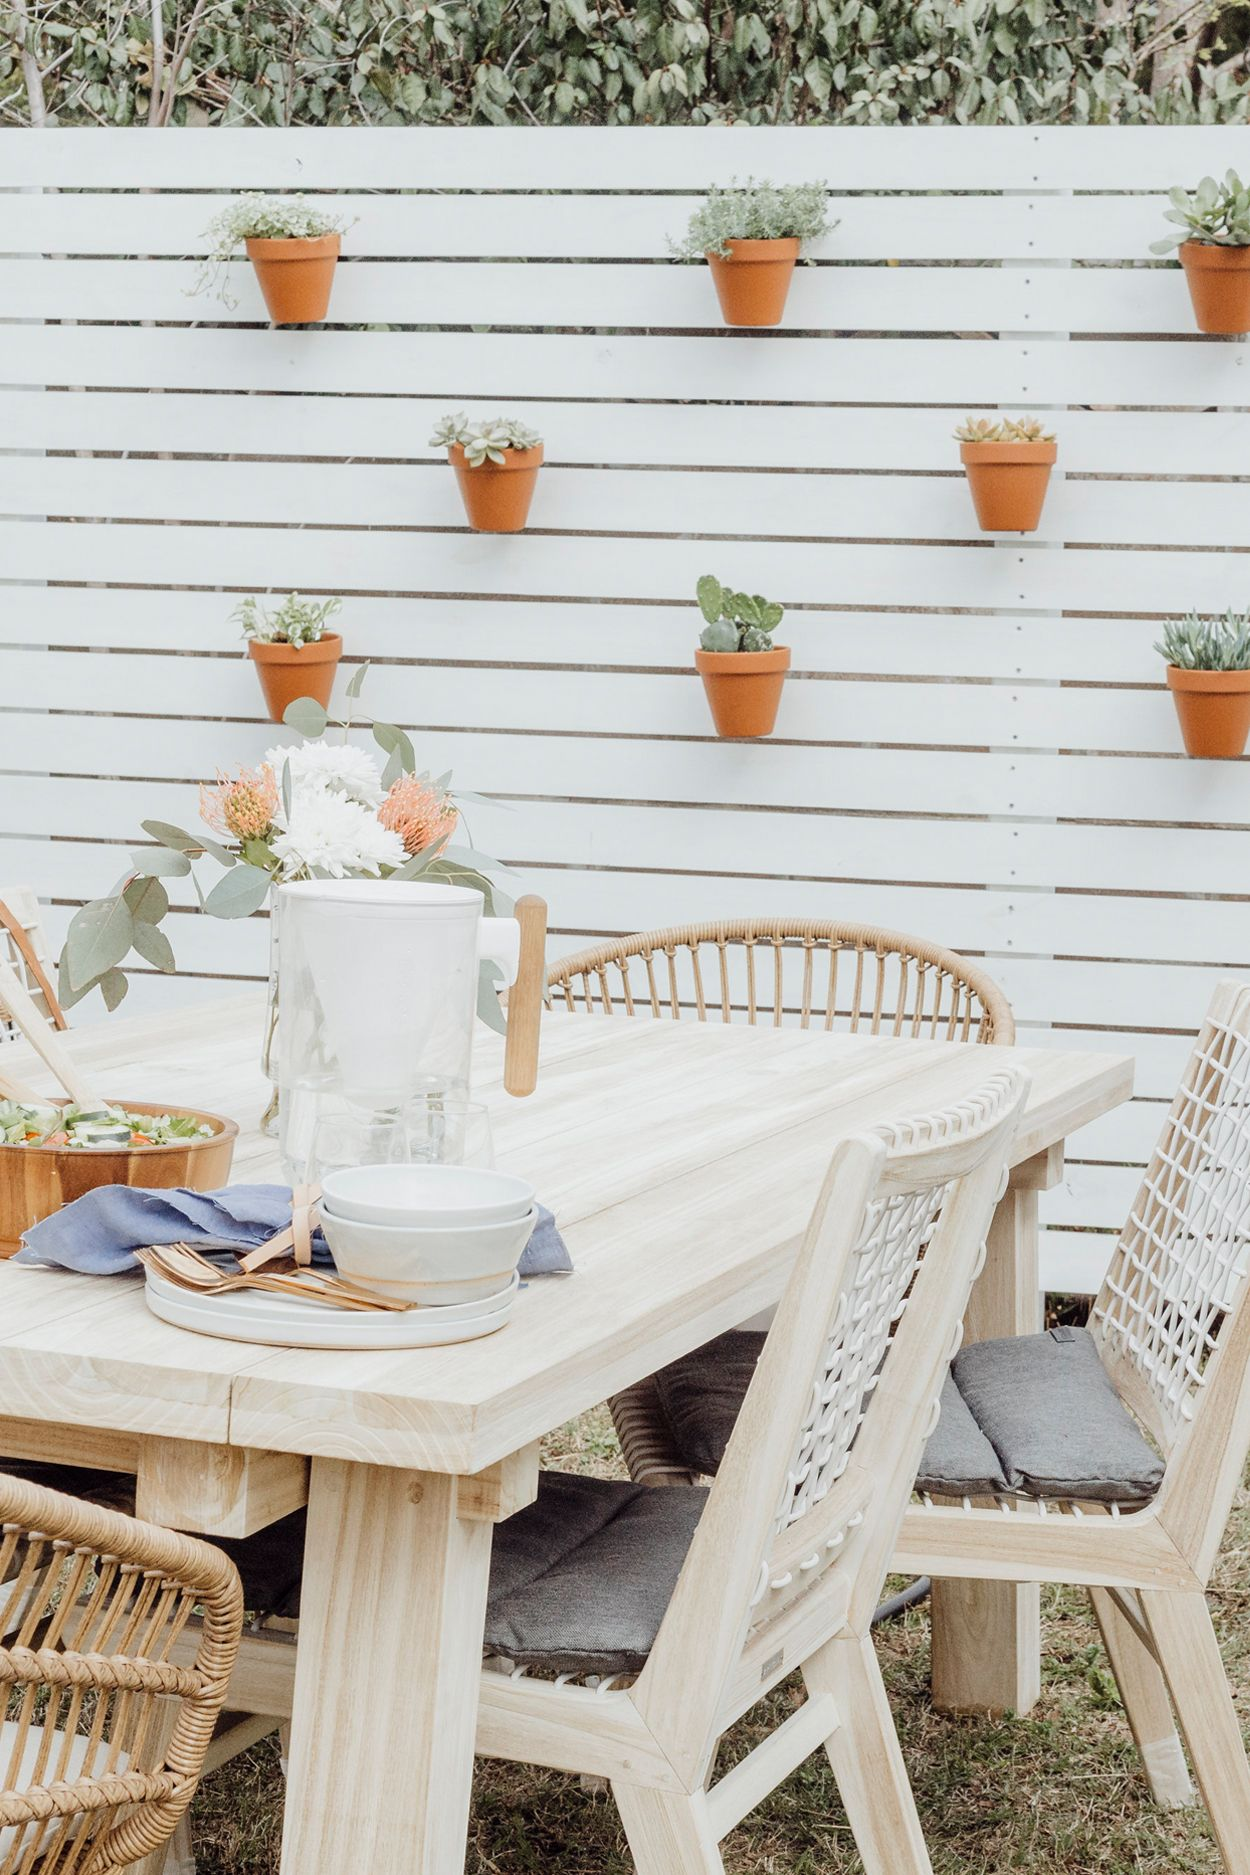 Brunch Is Always Better On The Teaka Table Photo By Courtney Weston Wooden Outdoor Furniture Dining Chairs Furniture